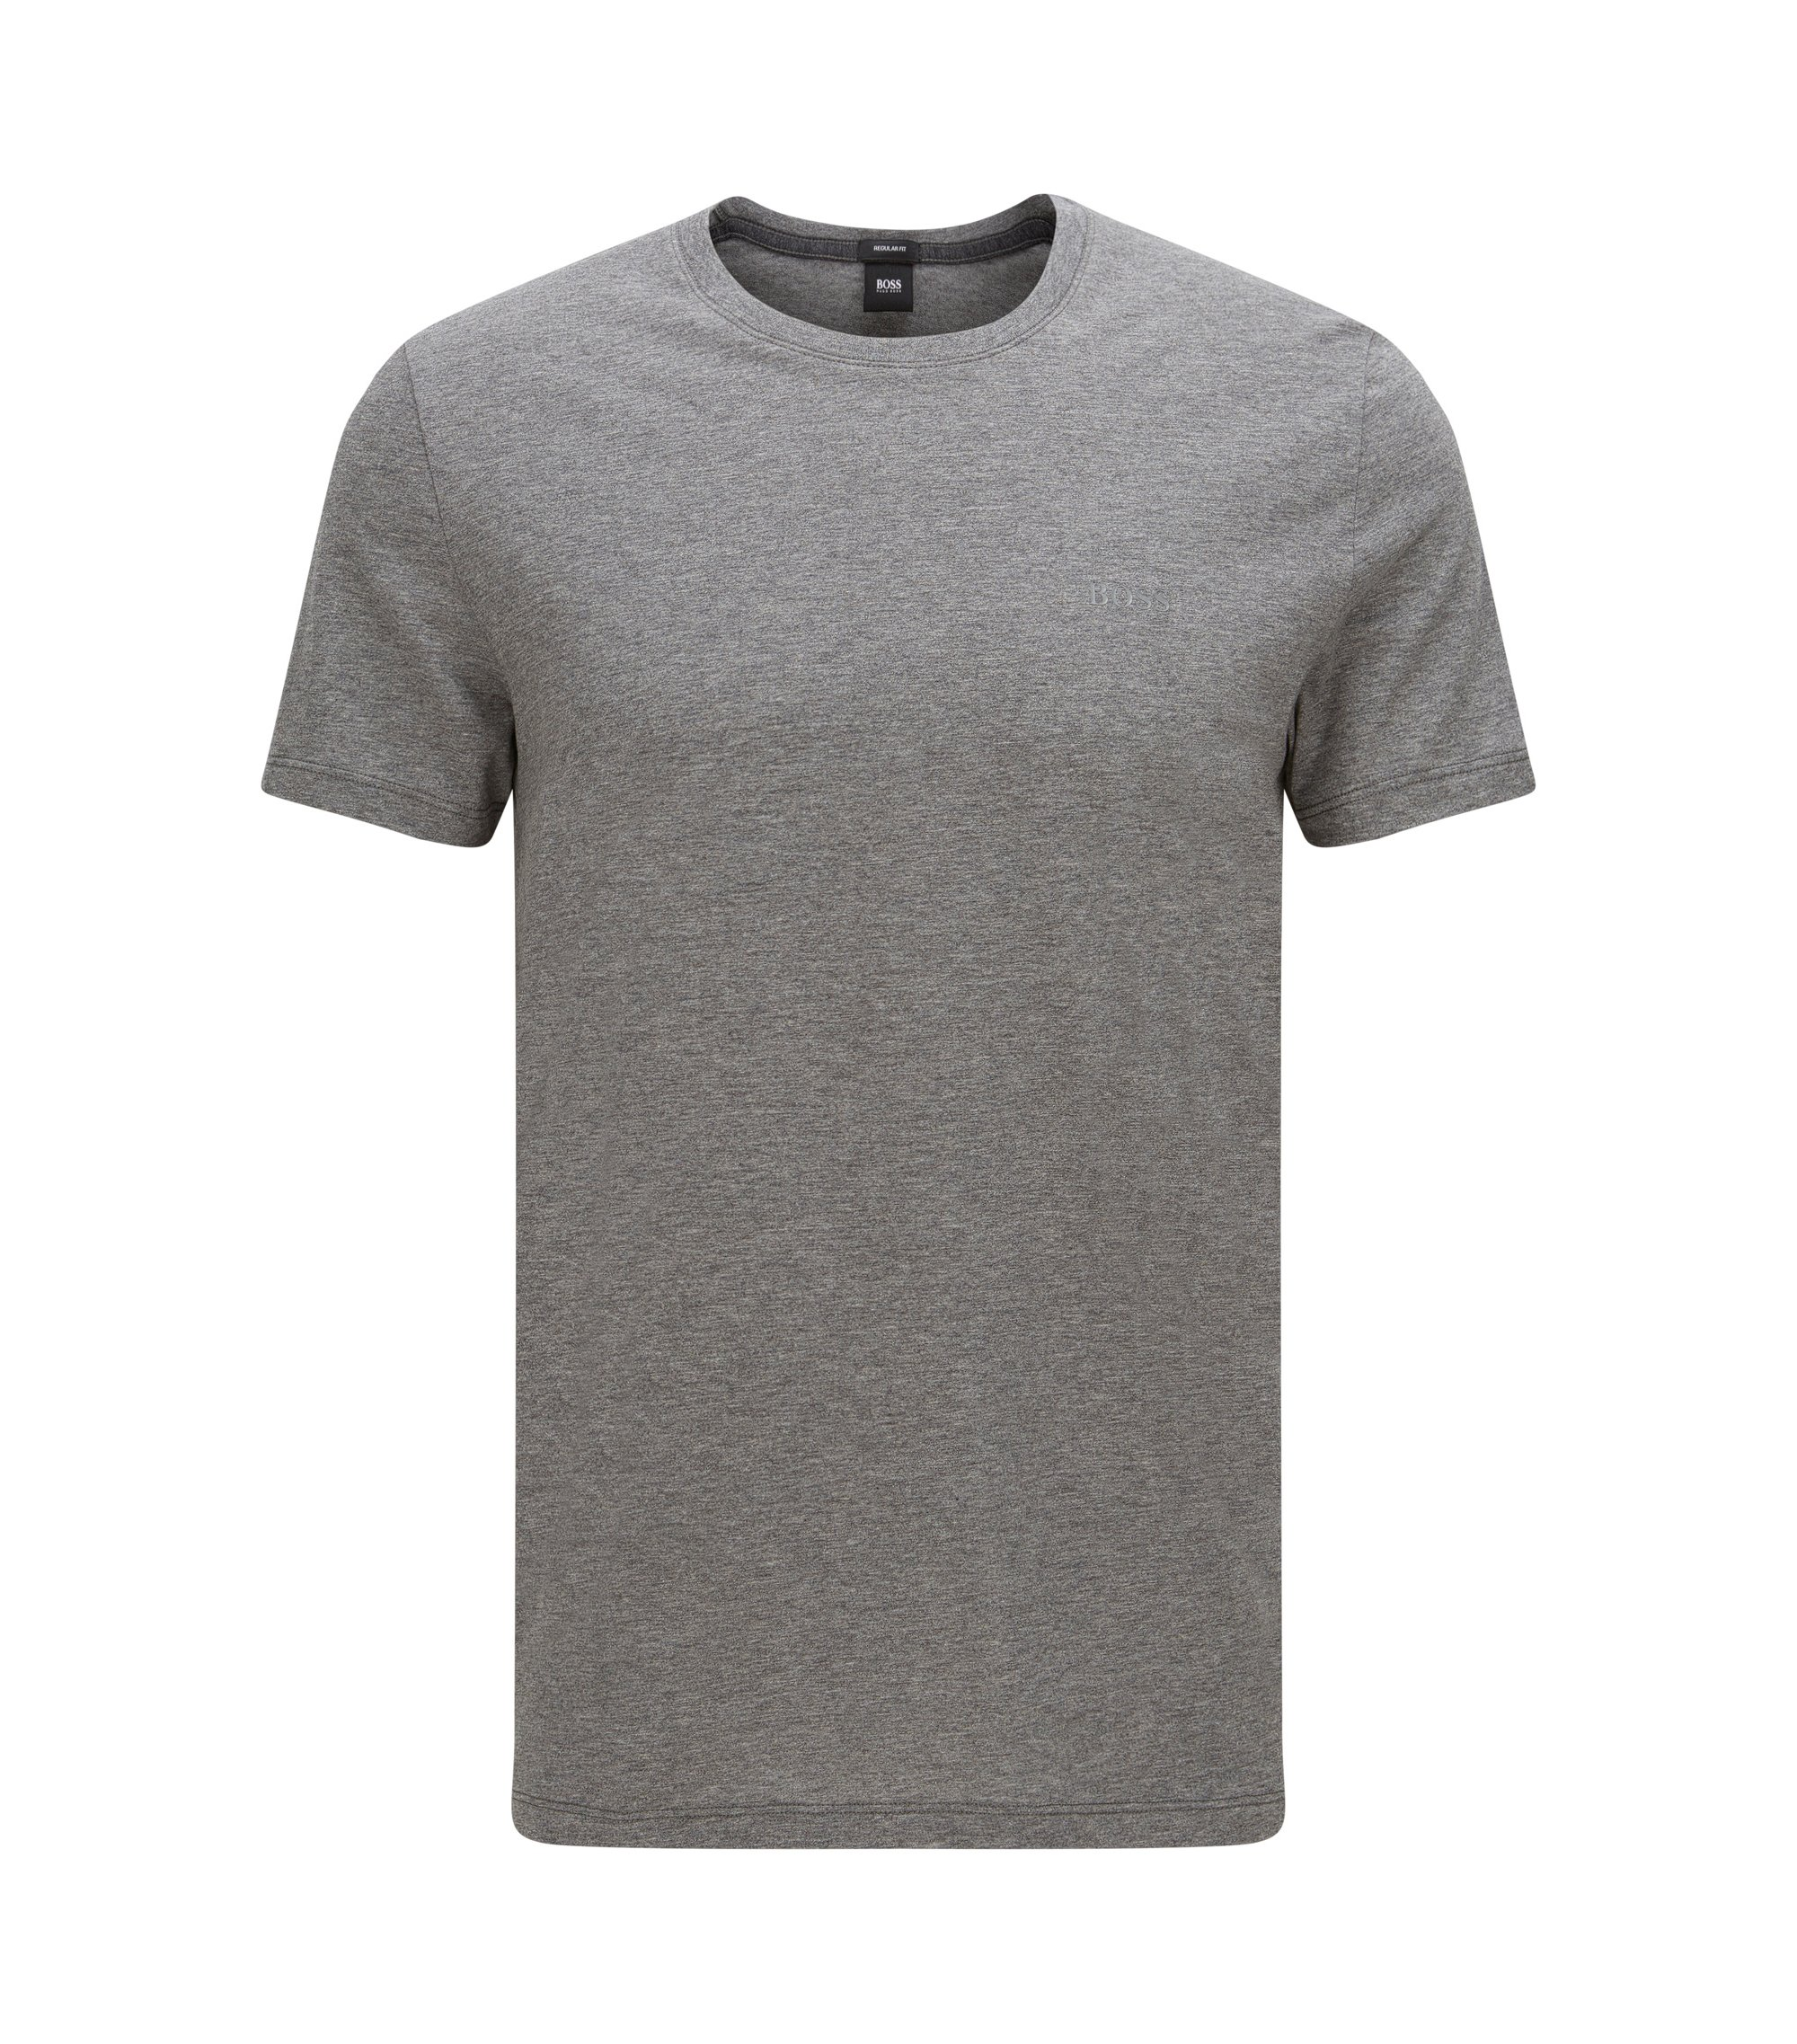 T-shirt Regular Fit en coton doux, Gris